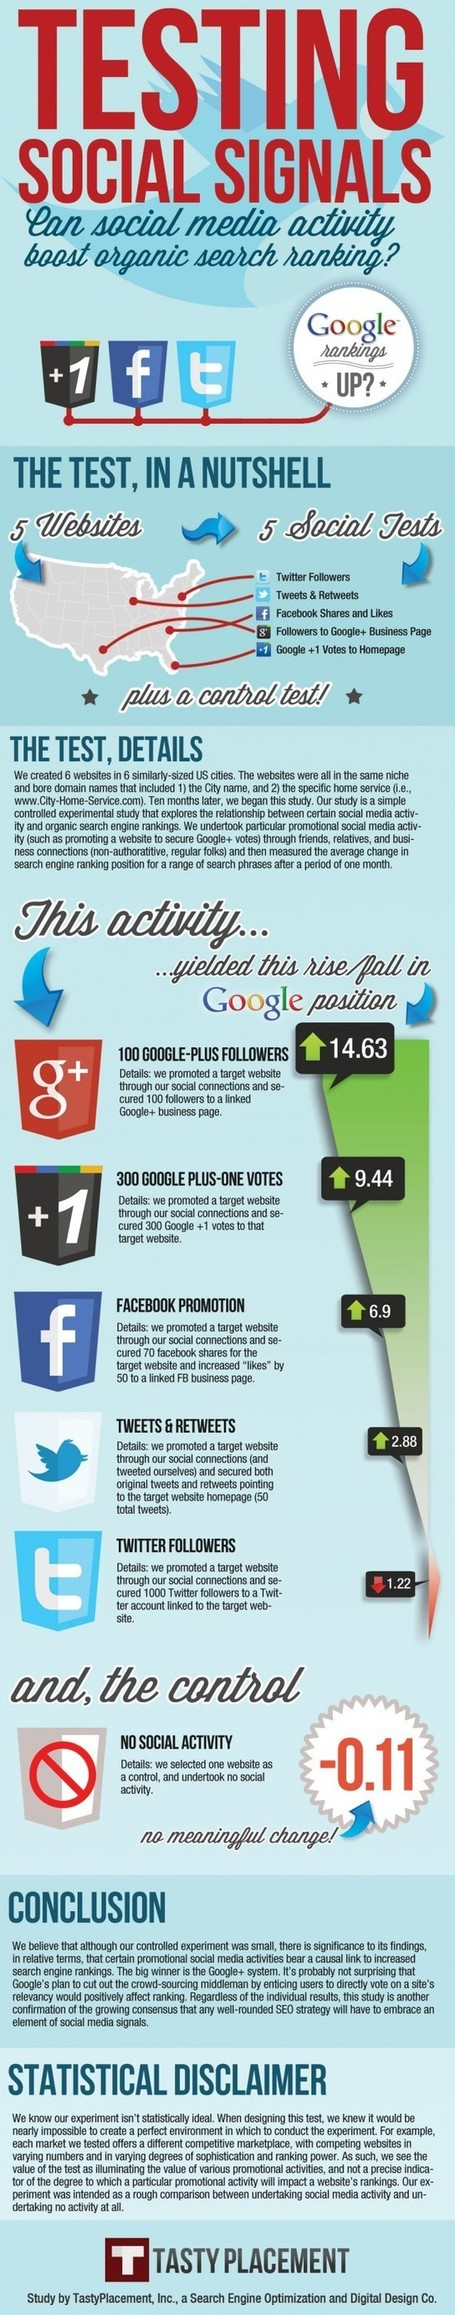 Grow Social Media Reach & become King of Google 1st Page | Infographics | digital marketing strategy | Scoop.it